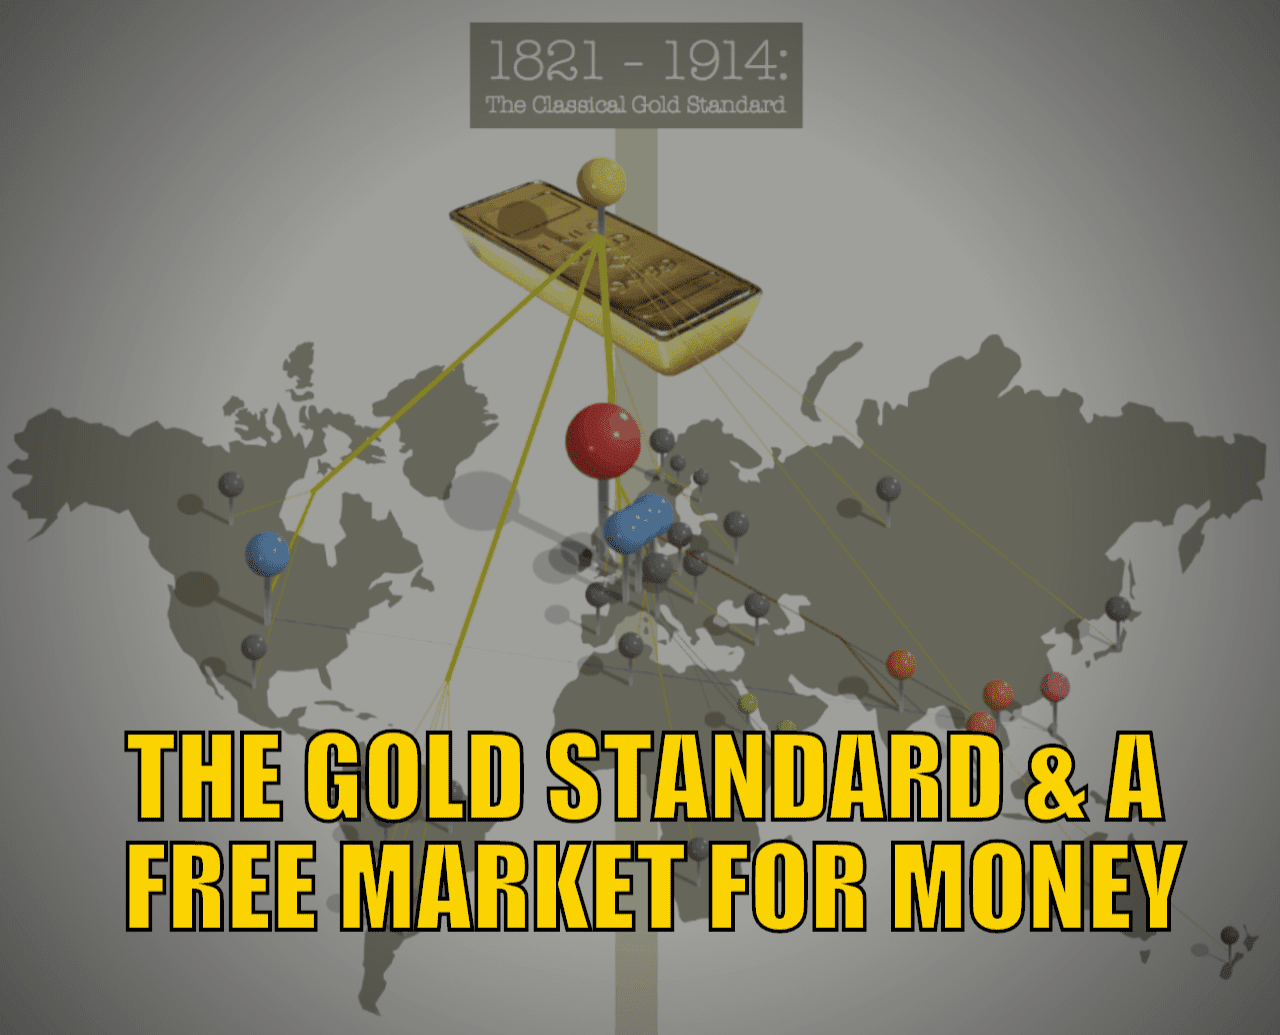 The Gold Standard & A Free Market For Money: What Do We Think About It?